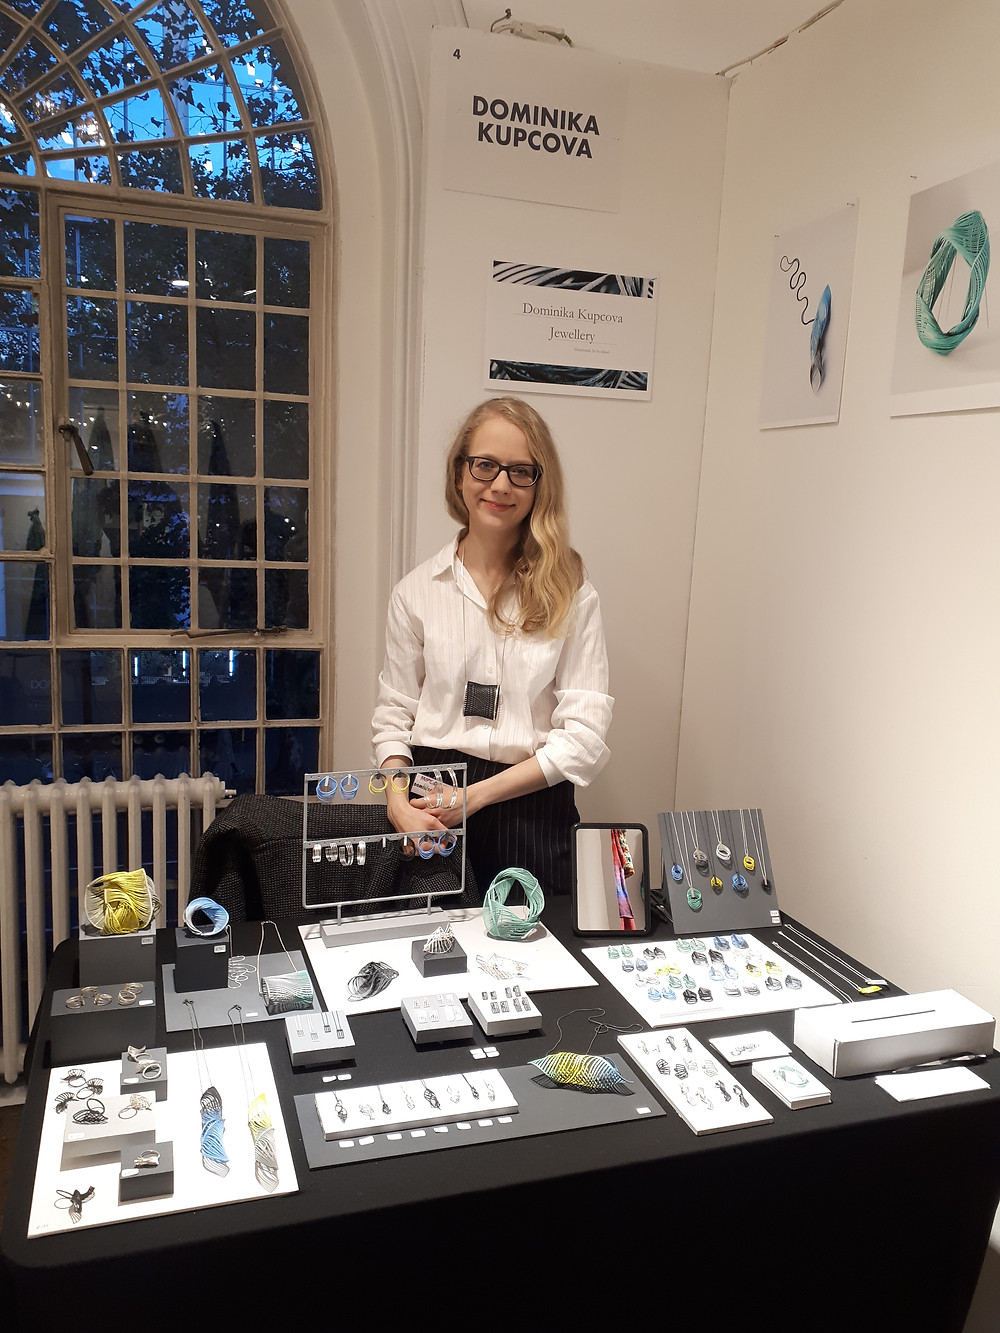 Dominika at her stand at Made London. Dominika is a white woman with mid-length blonde wavy hair and thick black glasses. She is wearing a white shirt, a black cylinder Optical Illusion Pendant, and black pinstripe trousers. She is standing behind a table full of her colourful jewellery, with a black tablecloth and grey wooden blocks. The wall behind her has a sign that says DOMINIKA KUPCOVA, and another one with Dominika Kupcova Jewellery. There are 2 photos on the wall of Dominika's jewellery, the Blue Twist Pendant and the mint green Twist Brooch. The window on the left shows it is evening.